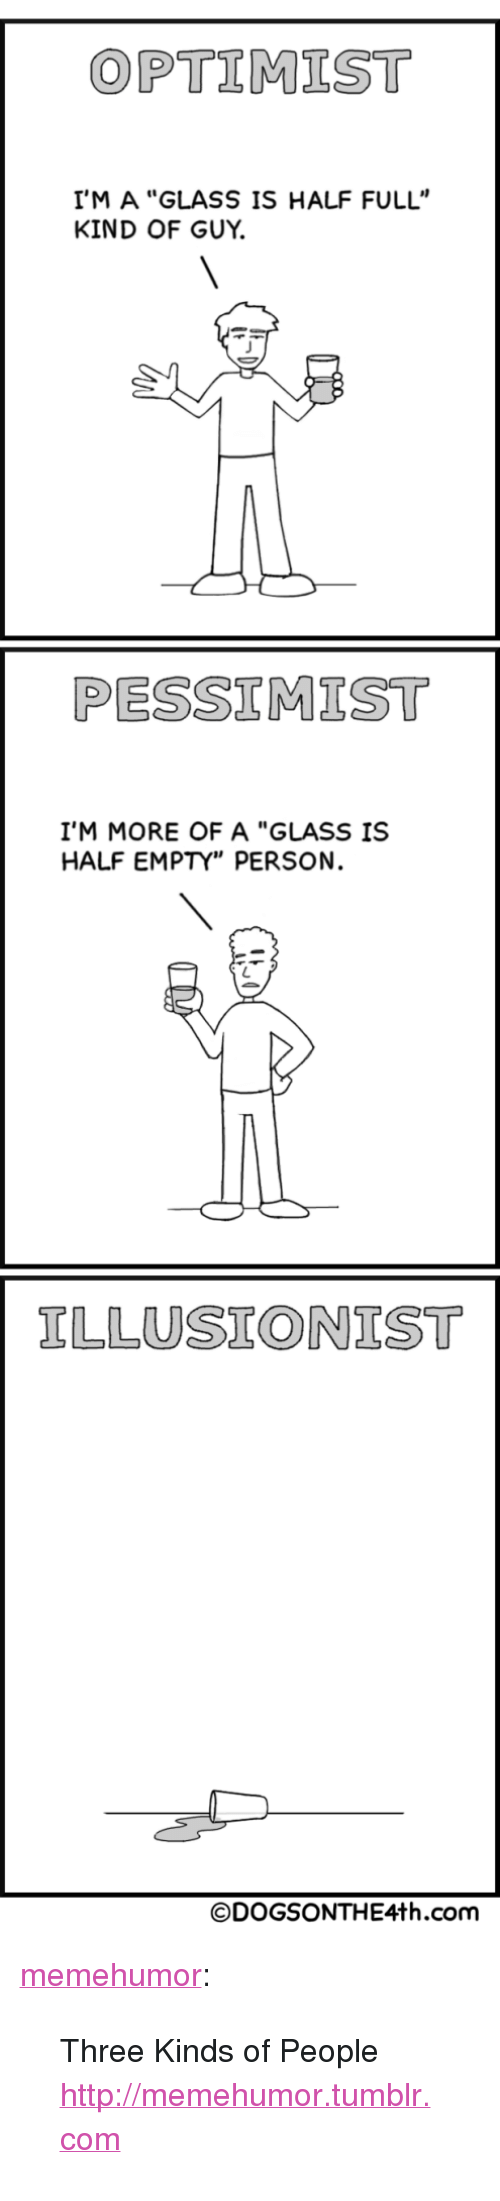 """Glass Is Half Empty: OPTIMIST  I'M A """"GLASS IS HALF FULL""""  KIND OF GUY.  PESSIMIST  I'M MORE OF A """"GLASS IS  HALF EMPTY"""" PERSON.  ILLUSIONIST  ©DOGSONTHE4th.com <p><a href=""""http://memehumor.tumblr.com/post/150276498308/three-kinds-of-people-httpmemehumortumblrcom"""" class=""""tumblr_blog"""">memehumor</a>:</p>  <blockquote><p>Three Kinds of People<br/><a href=""""http://memehumor.tumblr.com""""><span style=""""color: #0000cd;""""><a href=""""http://memehumor.tumblr.com"""">http://memehumor.tumblr.com</a></span></a></p></blockquote>"""